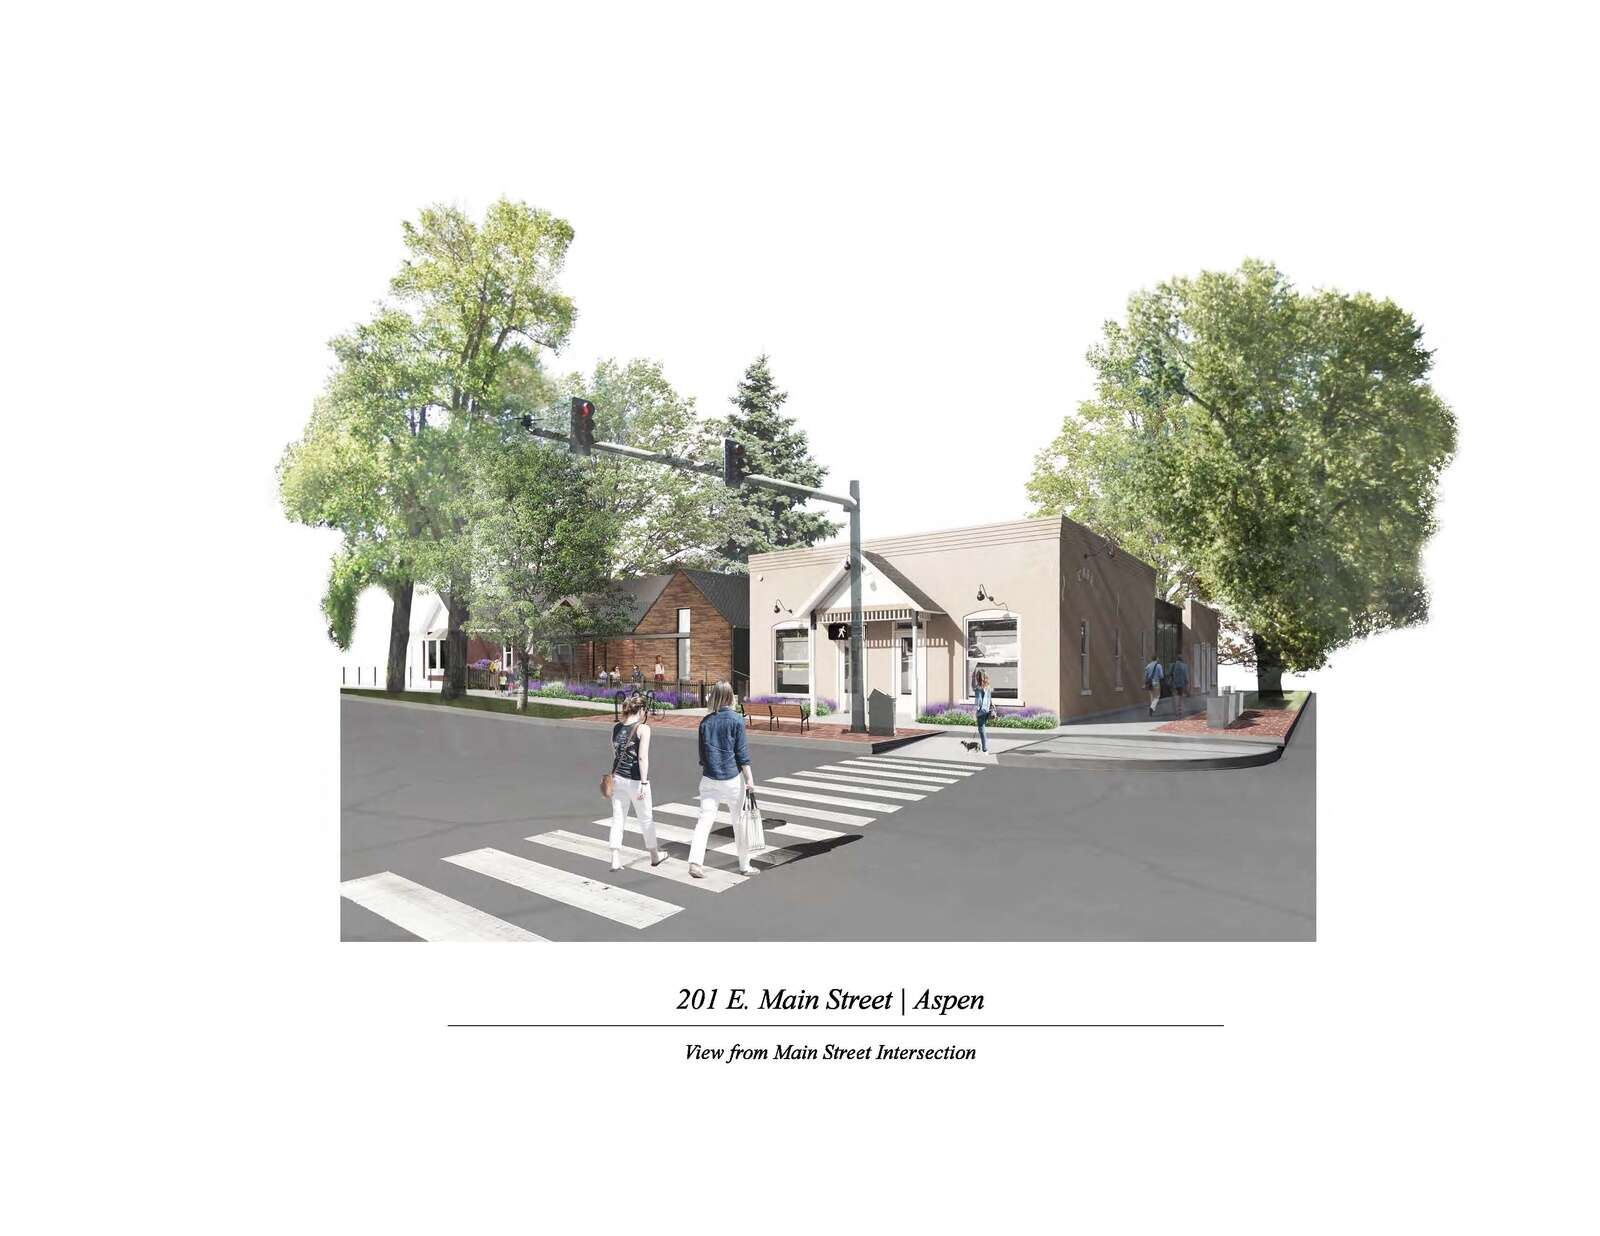 An architect's rendering of a redeveloped Main Street Bakery.